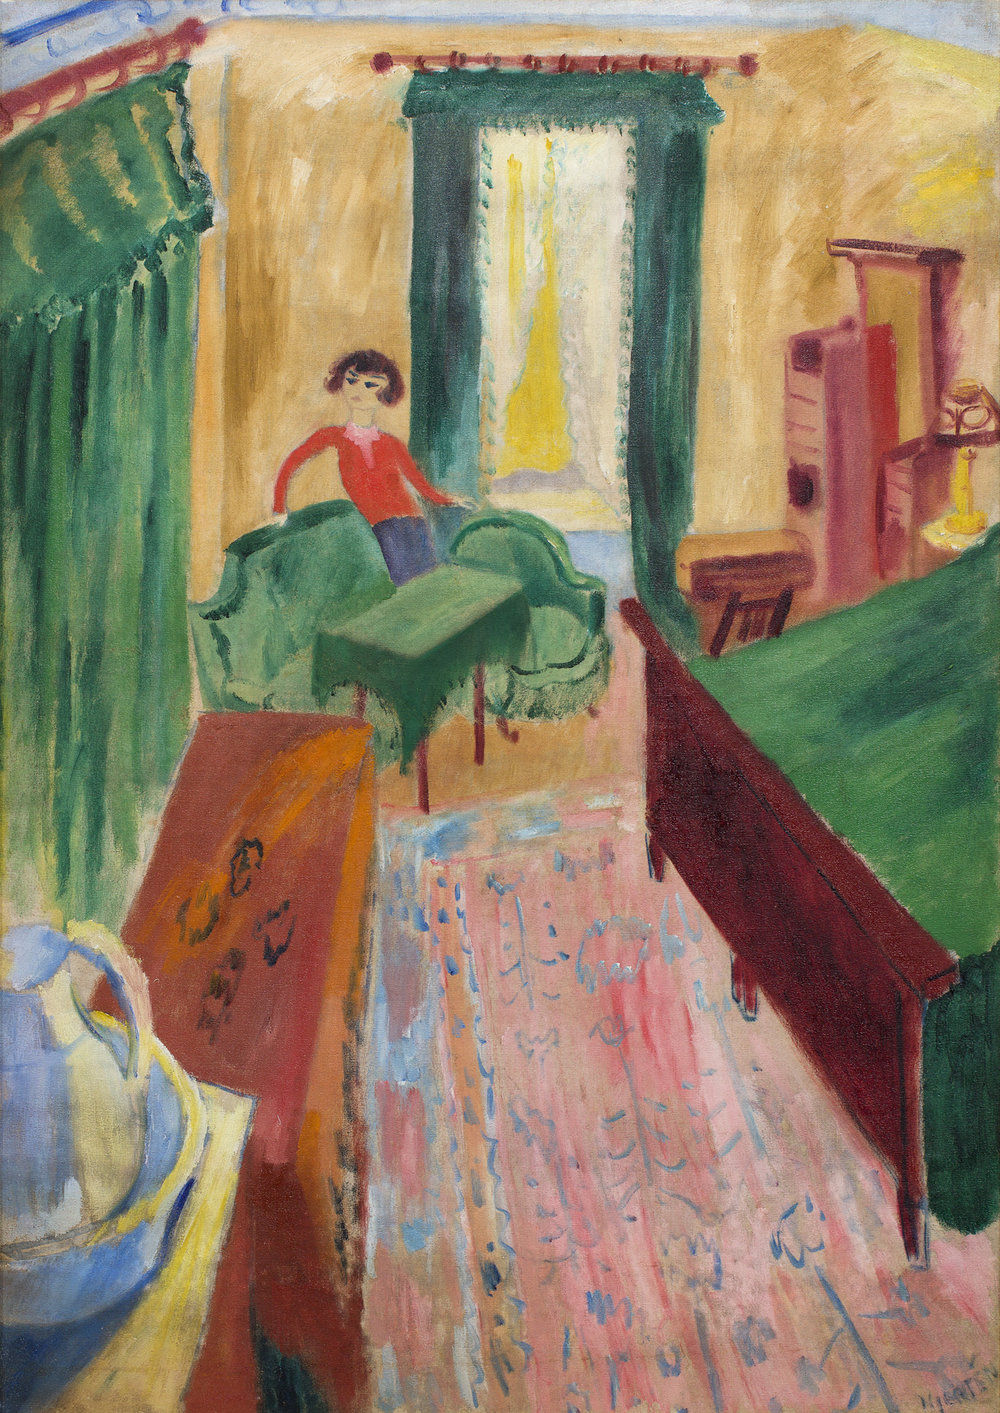 Sigrid Hjertén   Interiör – Iván i grön soffa  1915 Oil on canvas 97 x 69 cm